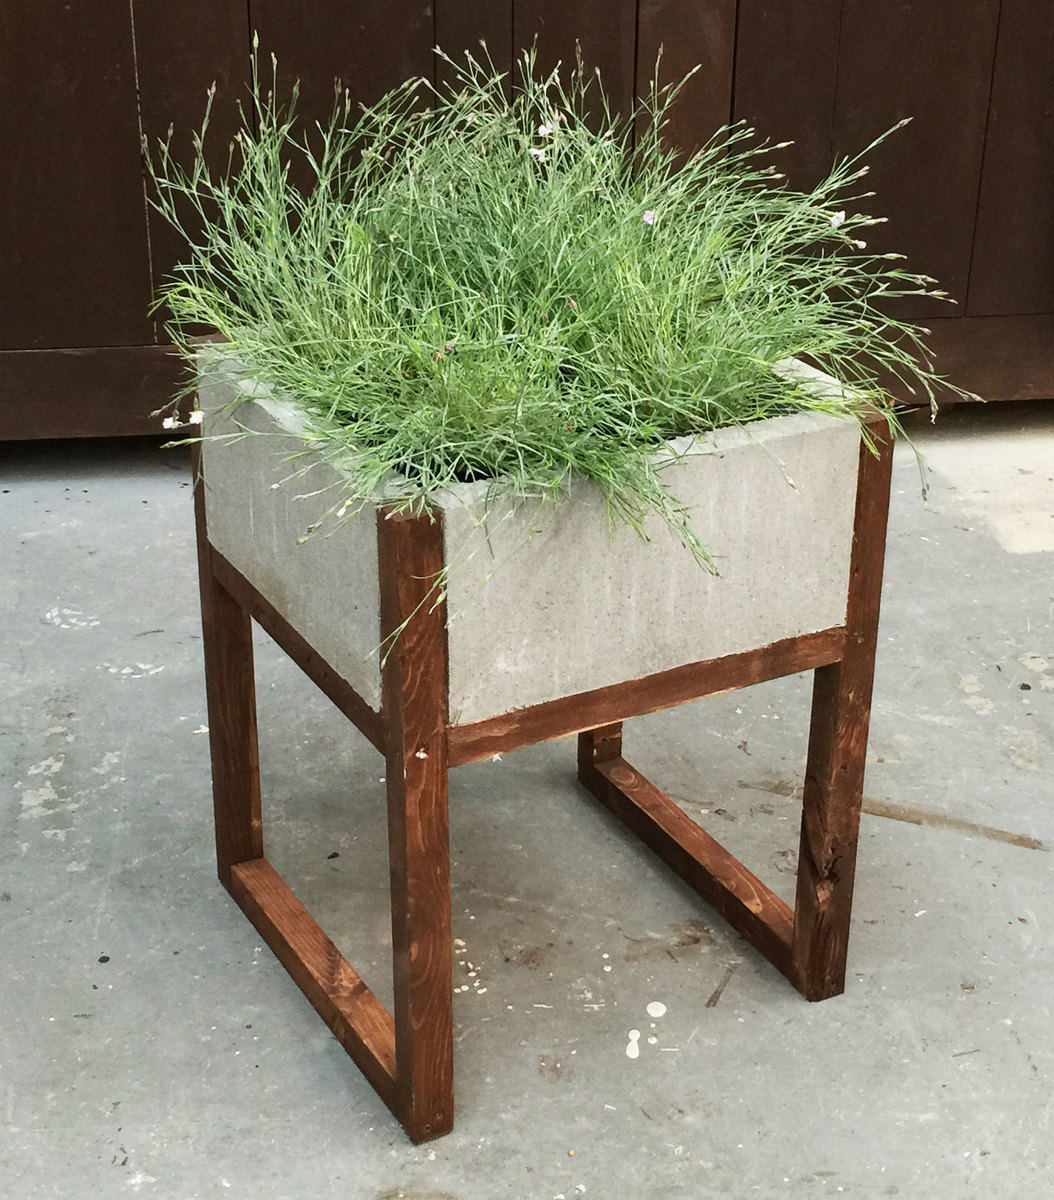 Ana white home depot dih workshop modern paver planter Concrete planters